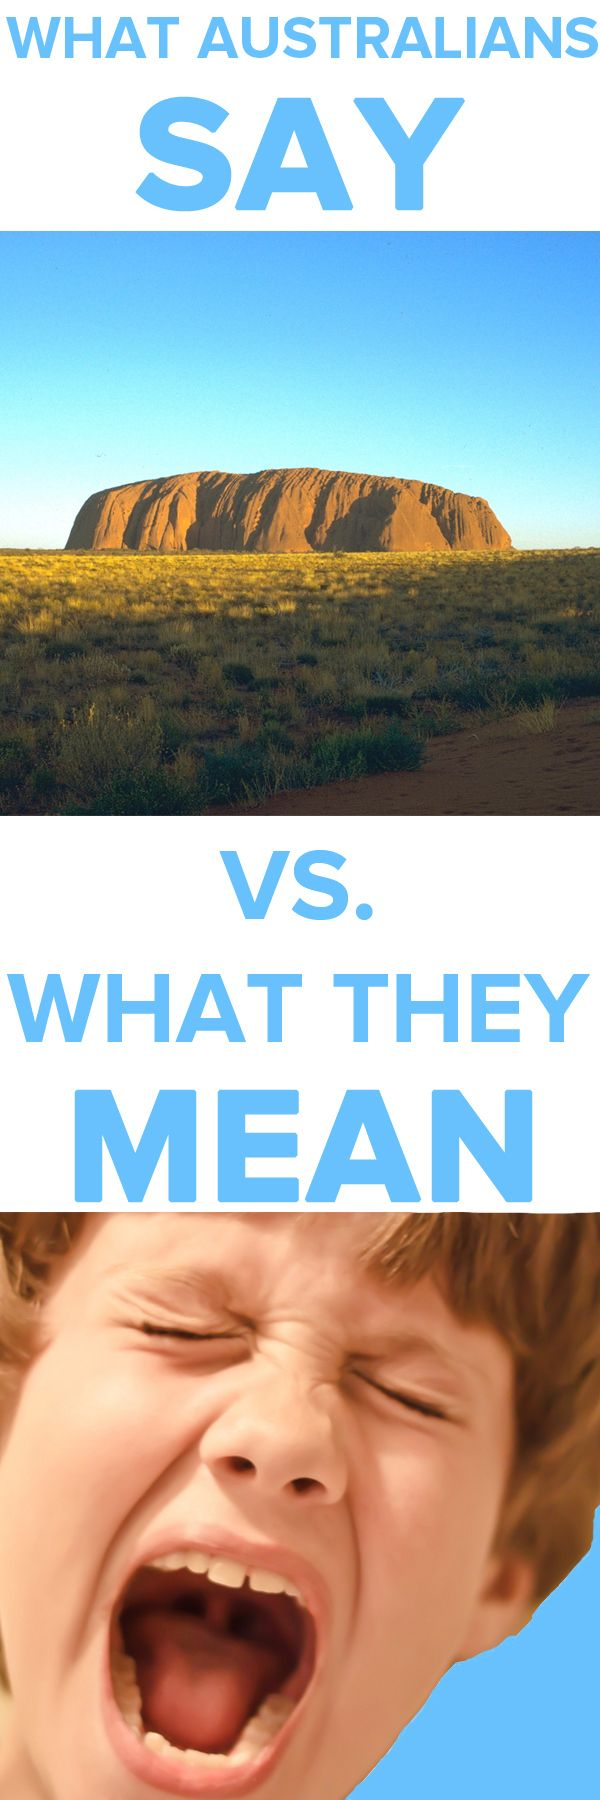 Things Australians Say Vs. What They Mean